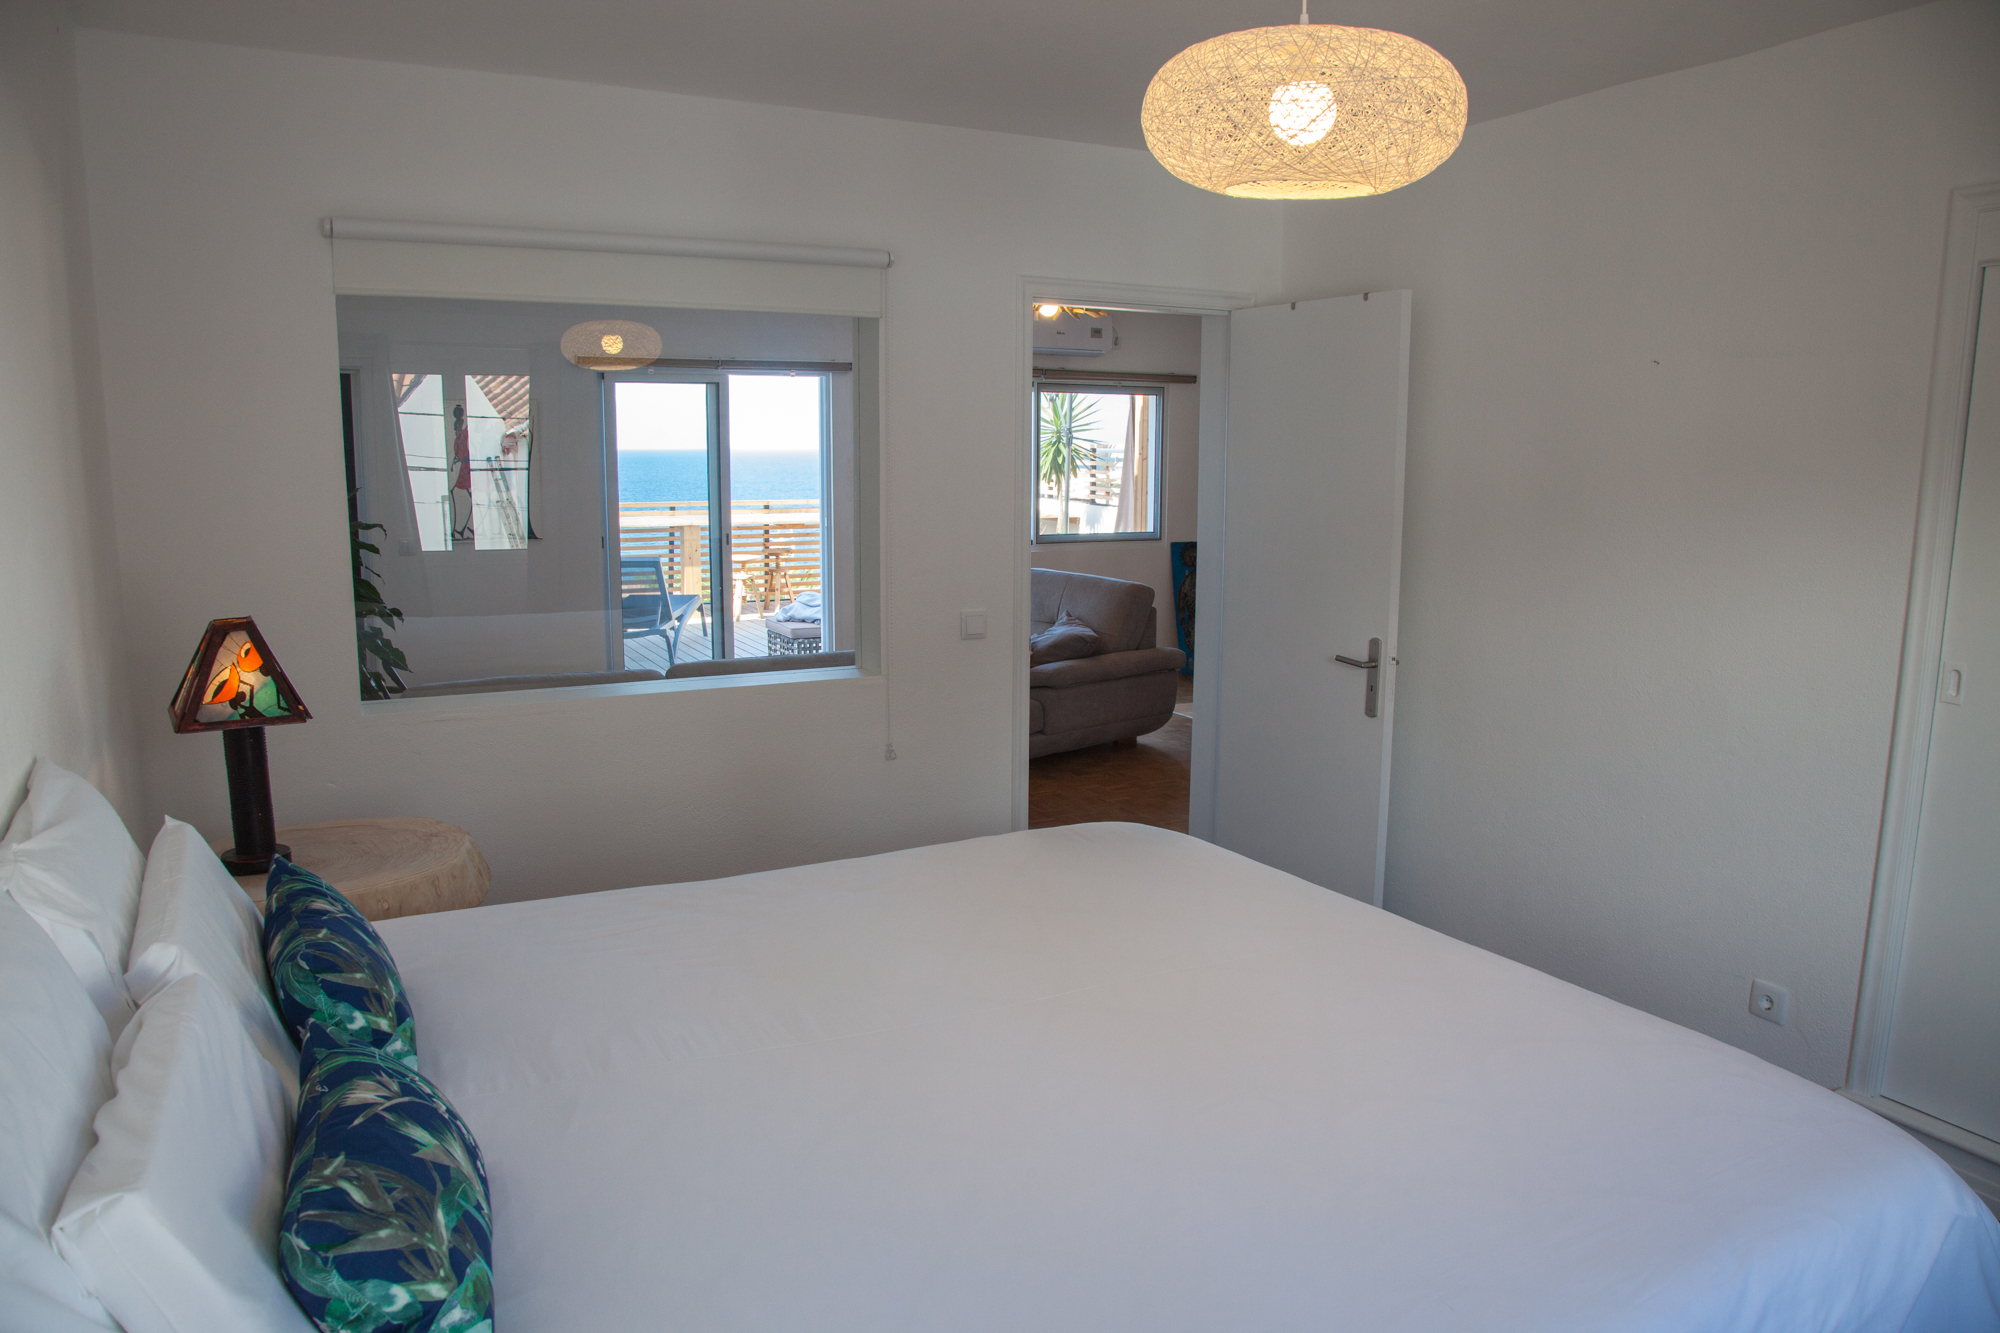 Azores Accommodation Villa Terra Bedroom queen Bed - Azores Connections.jpg